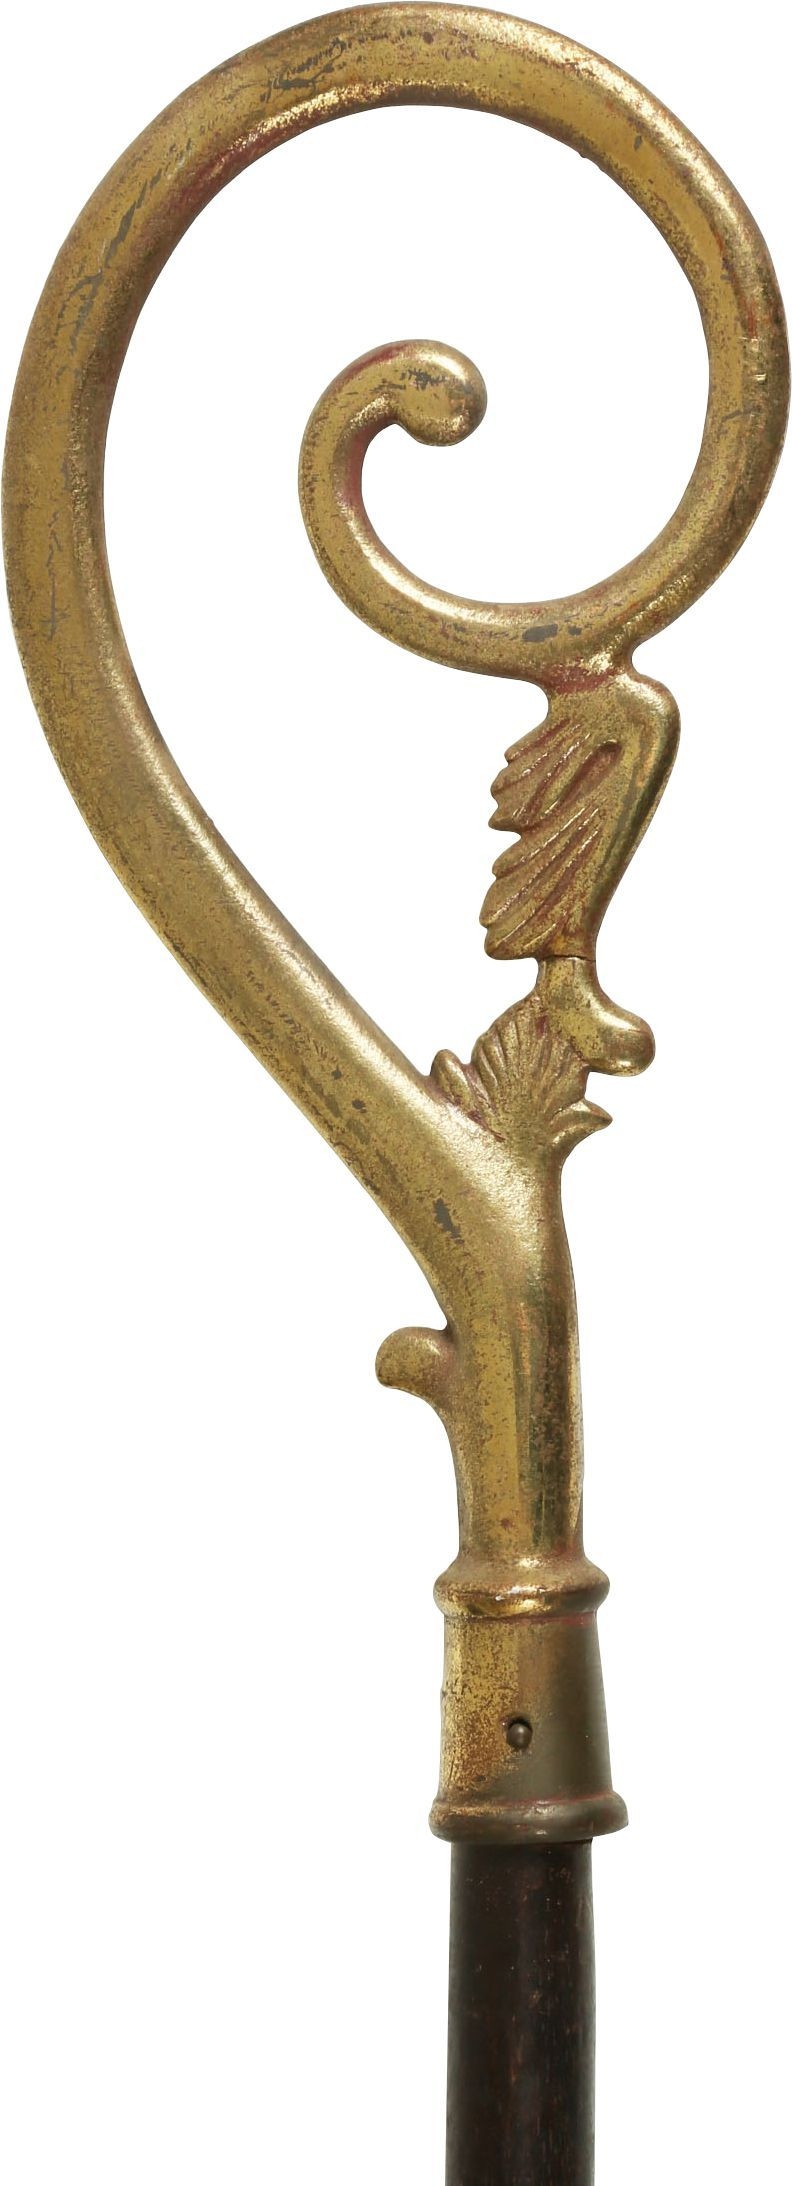 Bishops Crosier 19Th Century Probably C.1850-75 - Product